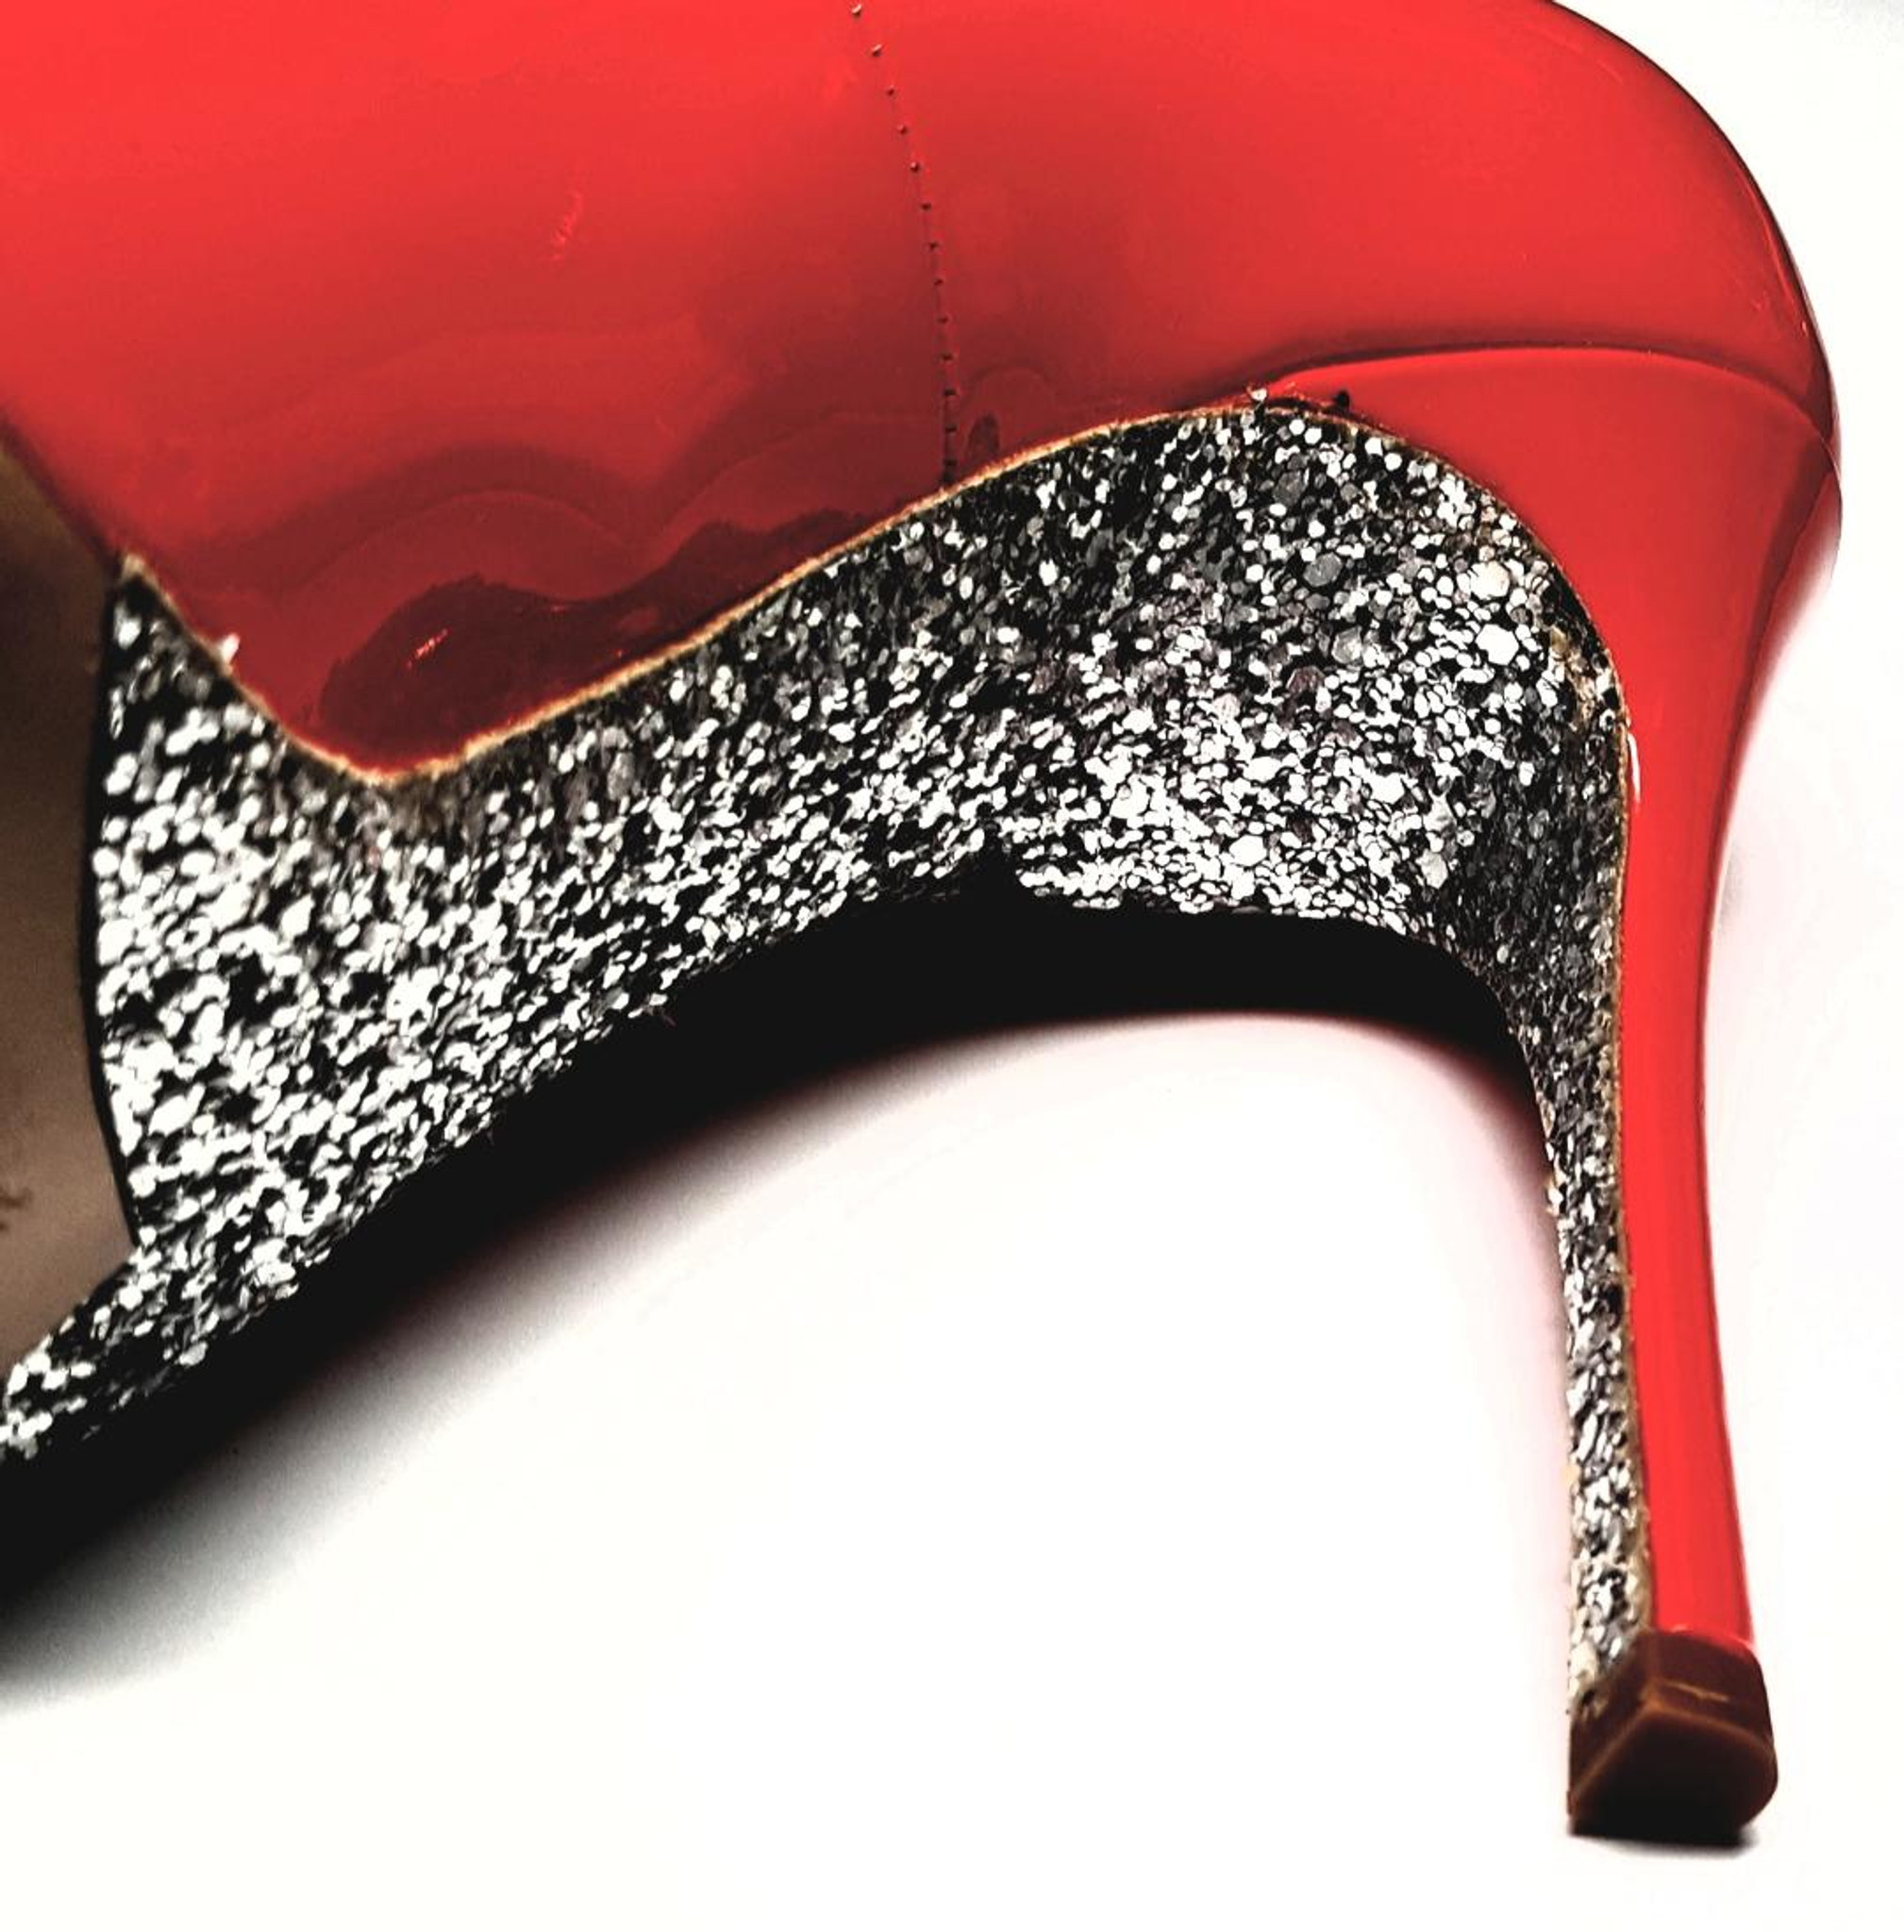 f20f8e89519 ... Cherry Red Patent Leather Pointed Toe Glitter Bottom Stiletto High Heels  by Miu Miu - New